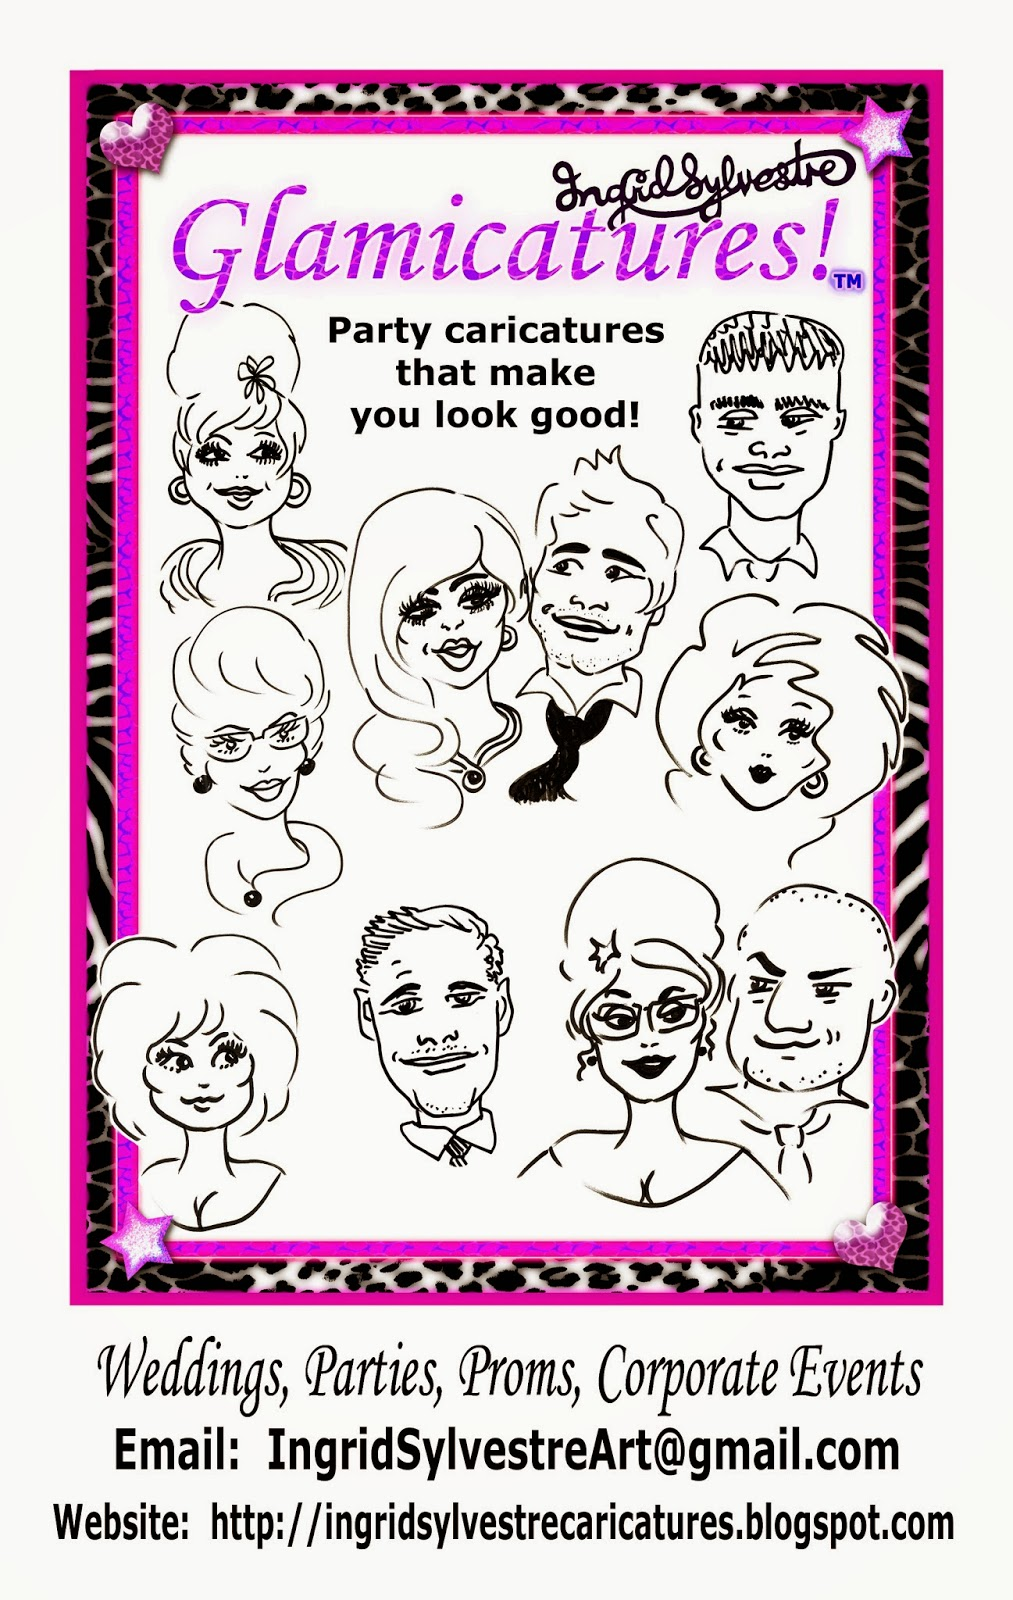 Wedding Entertainment ideas North East UK Wedding Caricatures Party Caricatures Conference Caricatures Christmas Party Caricatures Wedding ideas Wedding planning Gay Weddings Gay Wedding ideas Gay Wedding Entertainment Newcastle upon tyne County Durham Sunderland Teesside Northumberland Yorkshire Northeast Wedding Entertainment Northeast Entertainment Ingrid Sylvestre